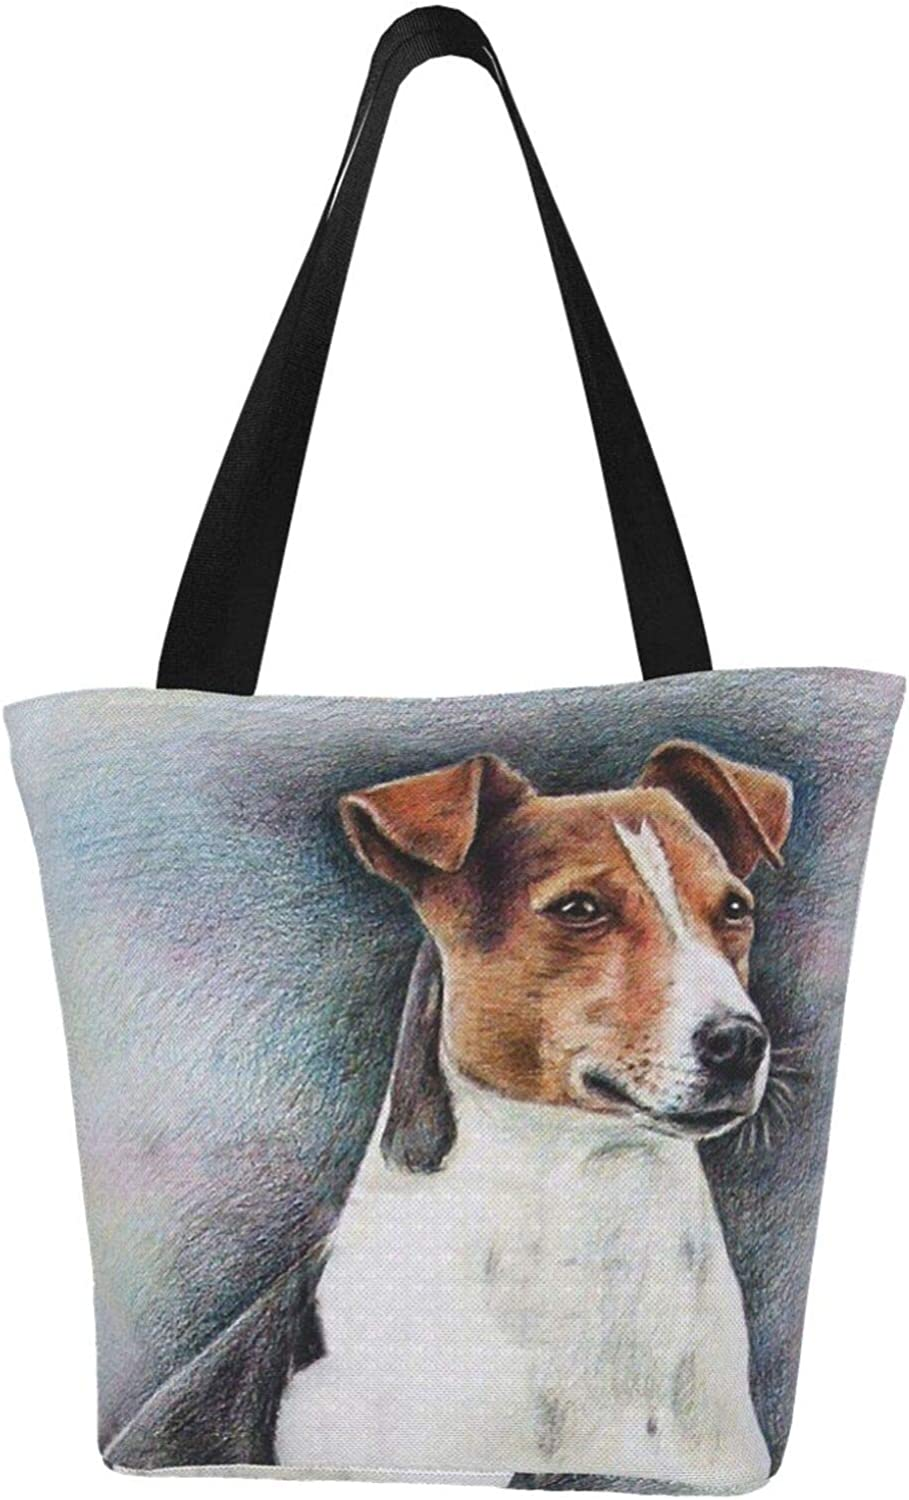 Cute Dog Jack Russell Terrier Gift Puppy Pet Themed Printed Women Canvas Handbag Zipper Shoulder Bag Work Booksbag Tote Purse Leisure Hobo Bag For Shopping